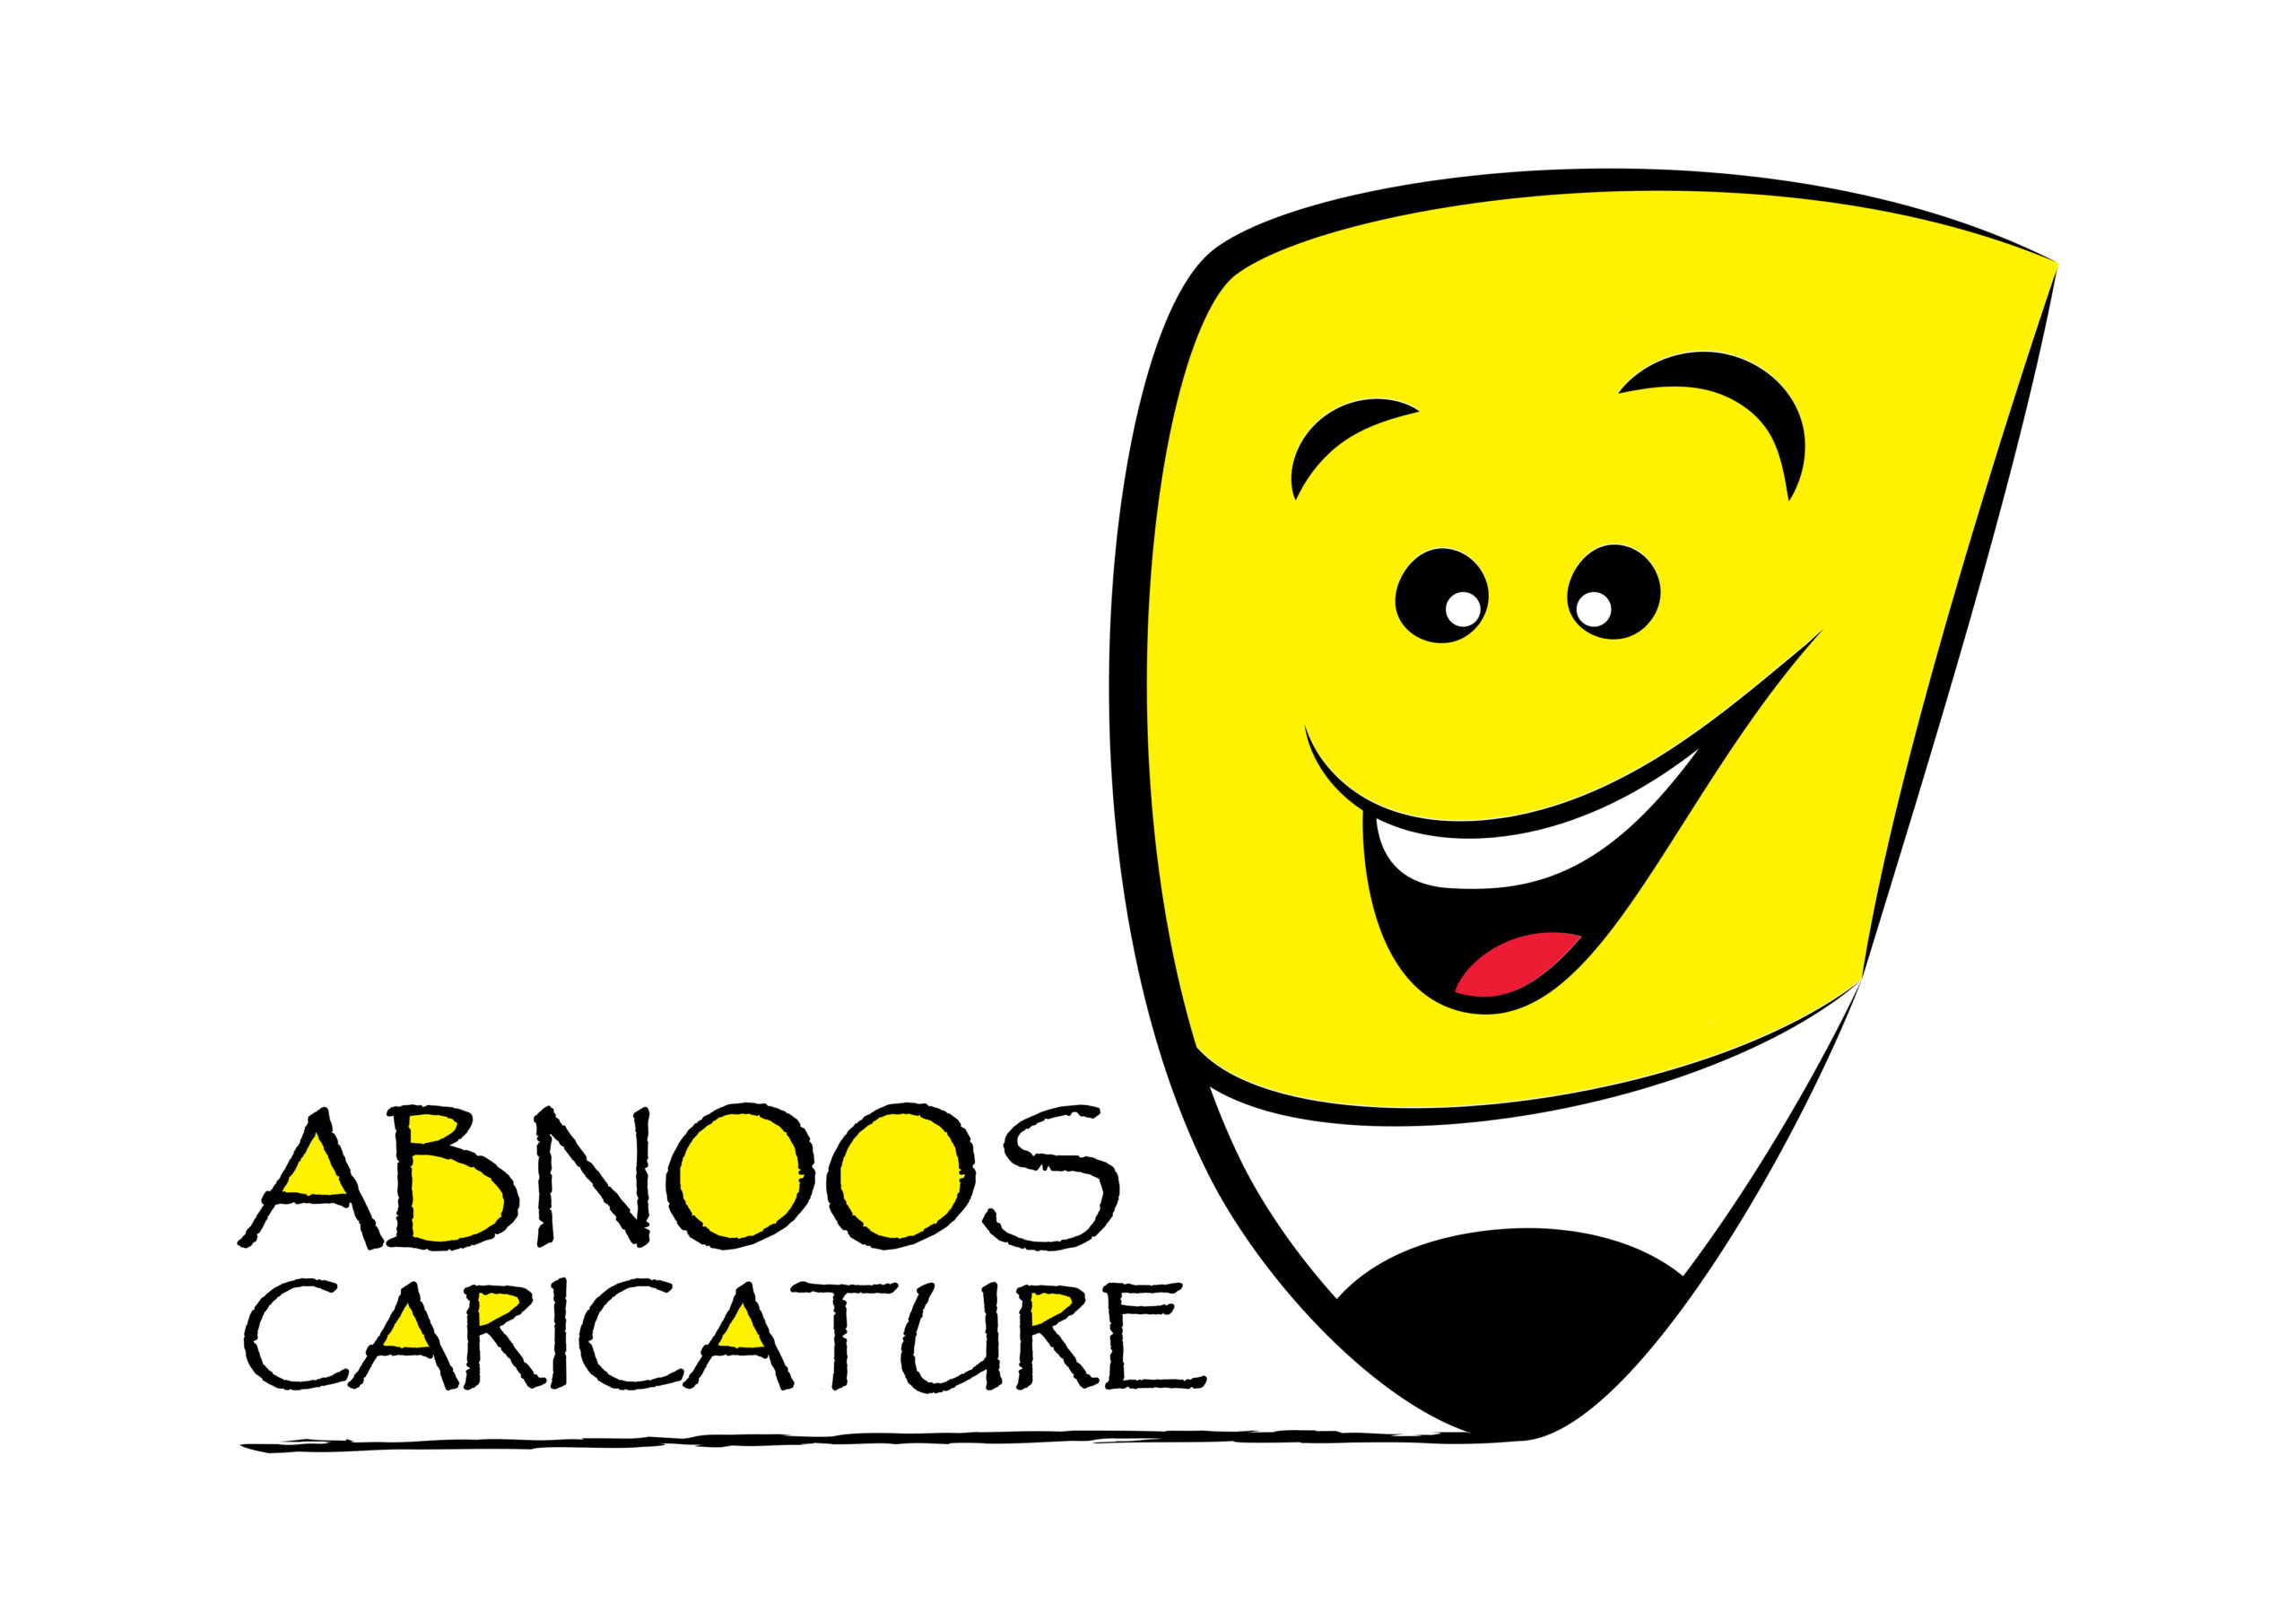 Abnoos Caricature